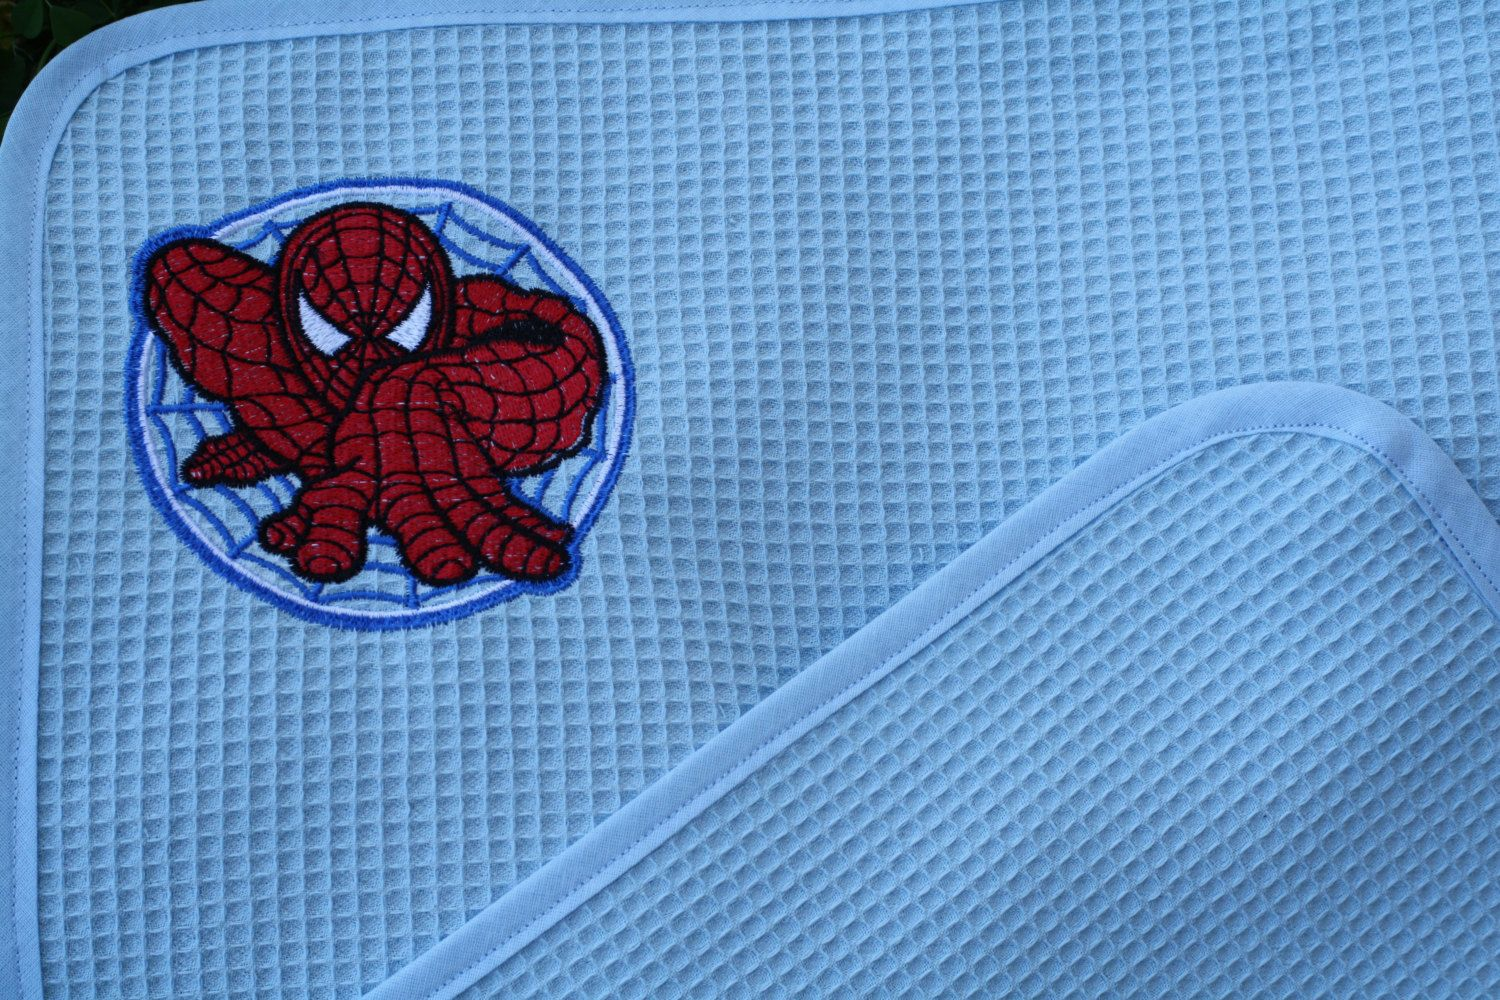 Spiderman my hero embroidery design embroidery designs spider